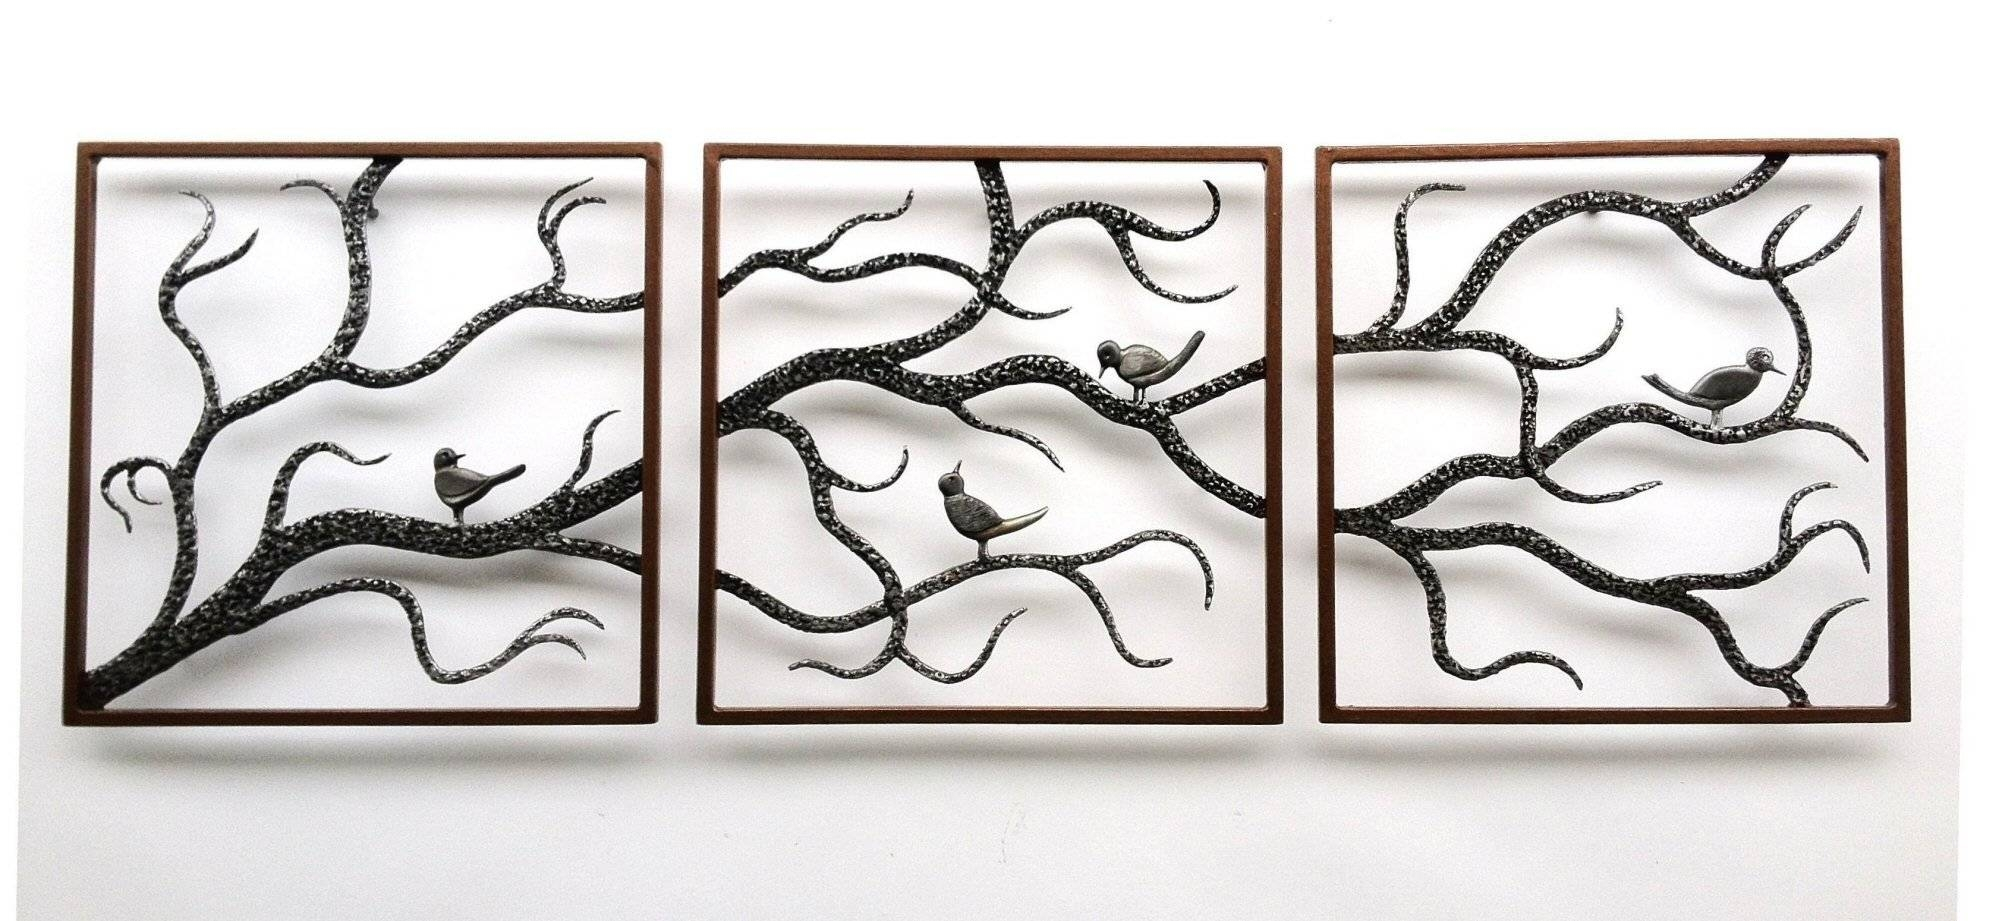 Wall Art Designs: Metal Wall Art Trees Birch Three Framed Cute With Regard To Most Current Birds On A Branch Metal Wall Art (View 2 of 20)